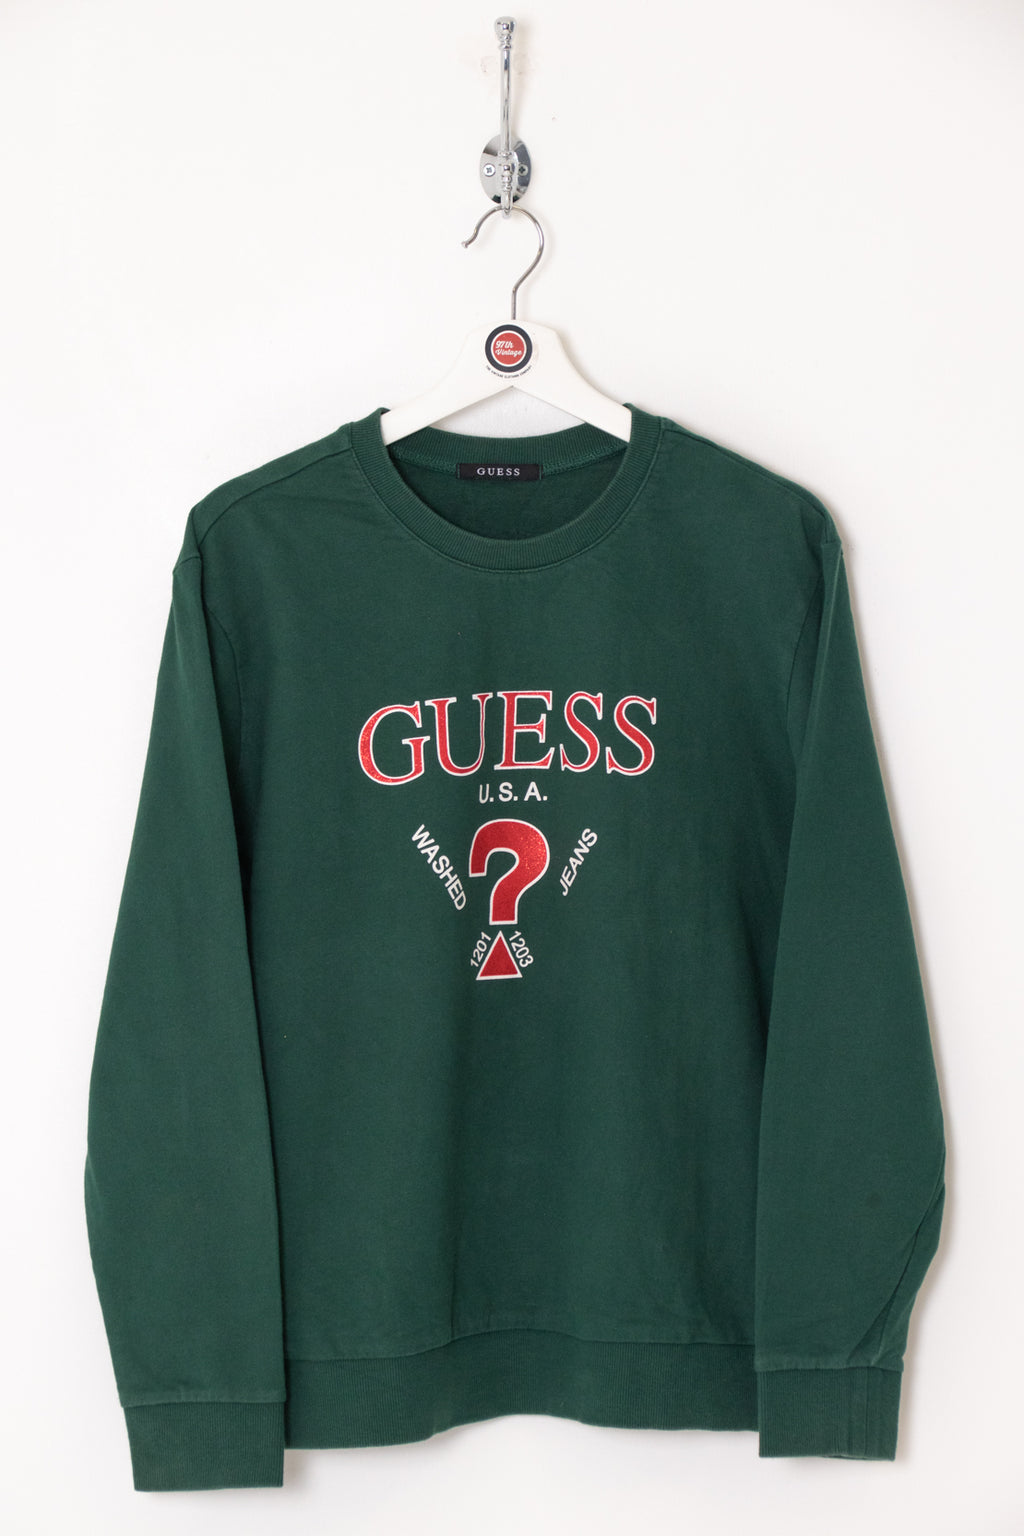 Women's Guess Sweatshirt (XL)